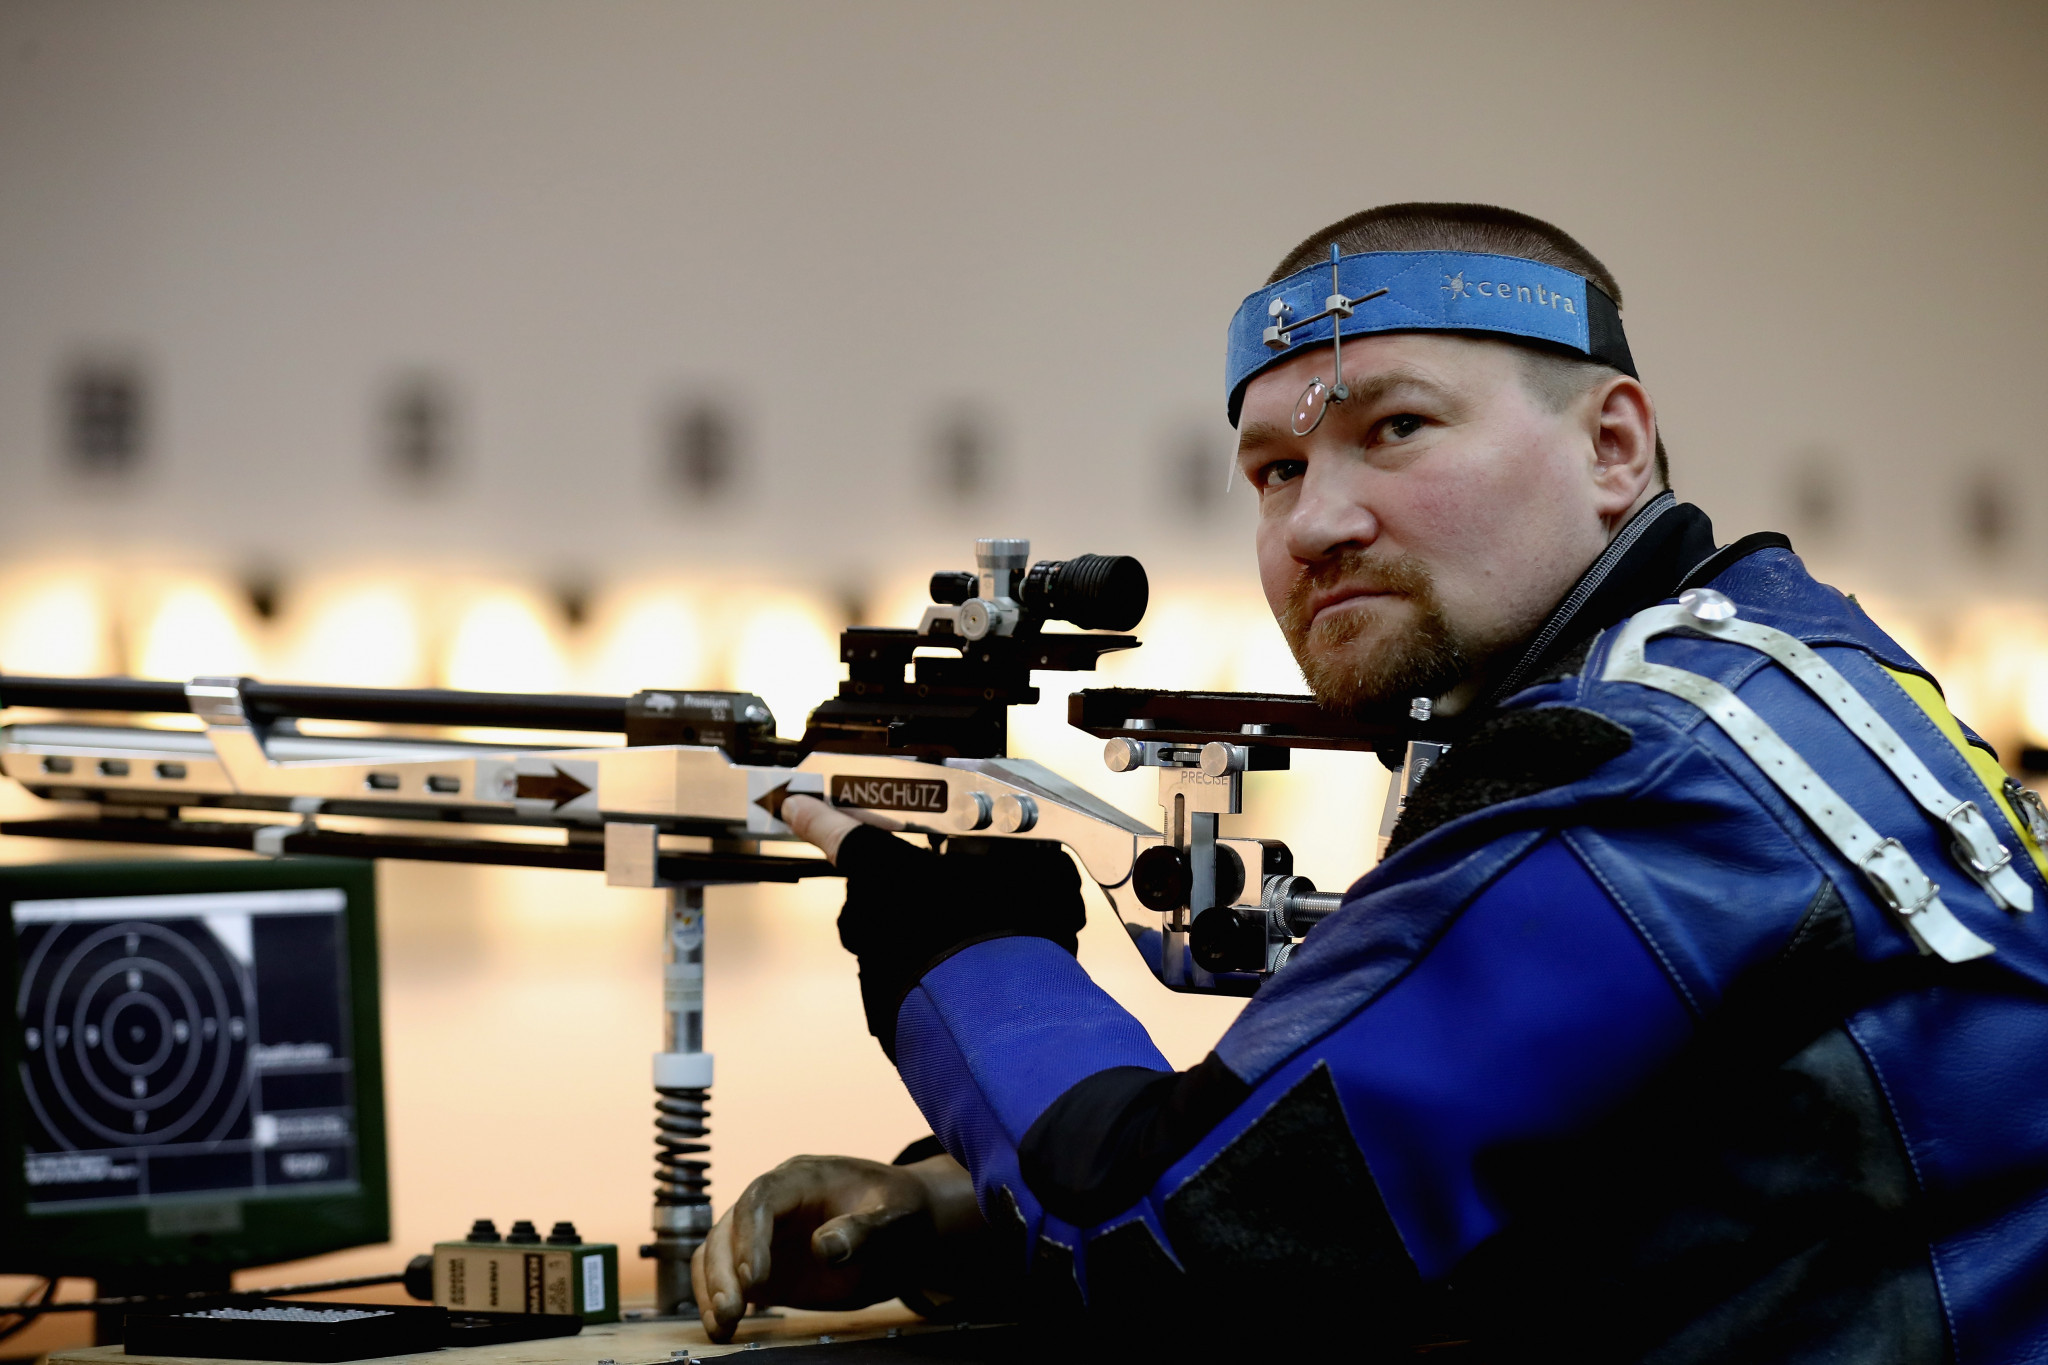 Kovalchuk earns victory in rifle event at World Shooting Para Sport World Cup